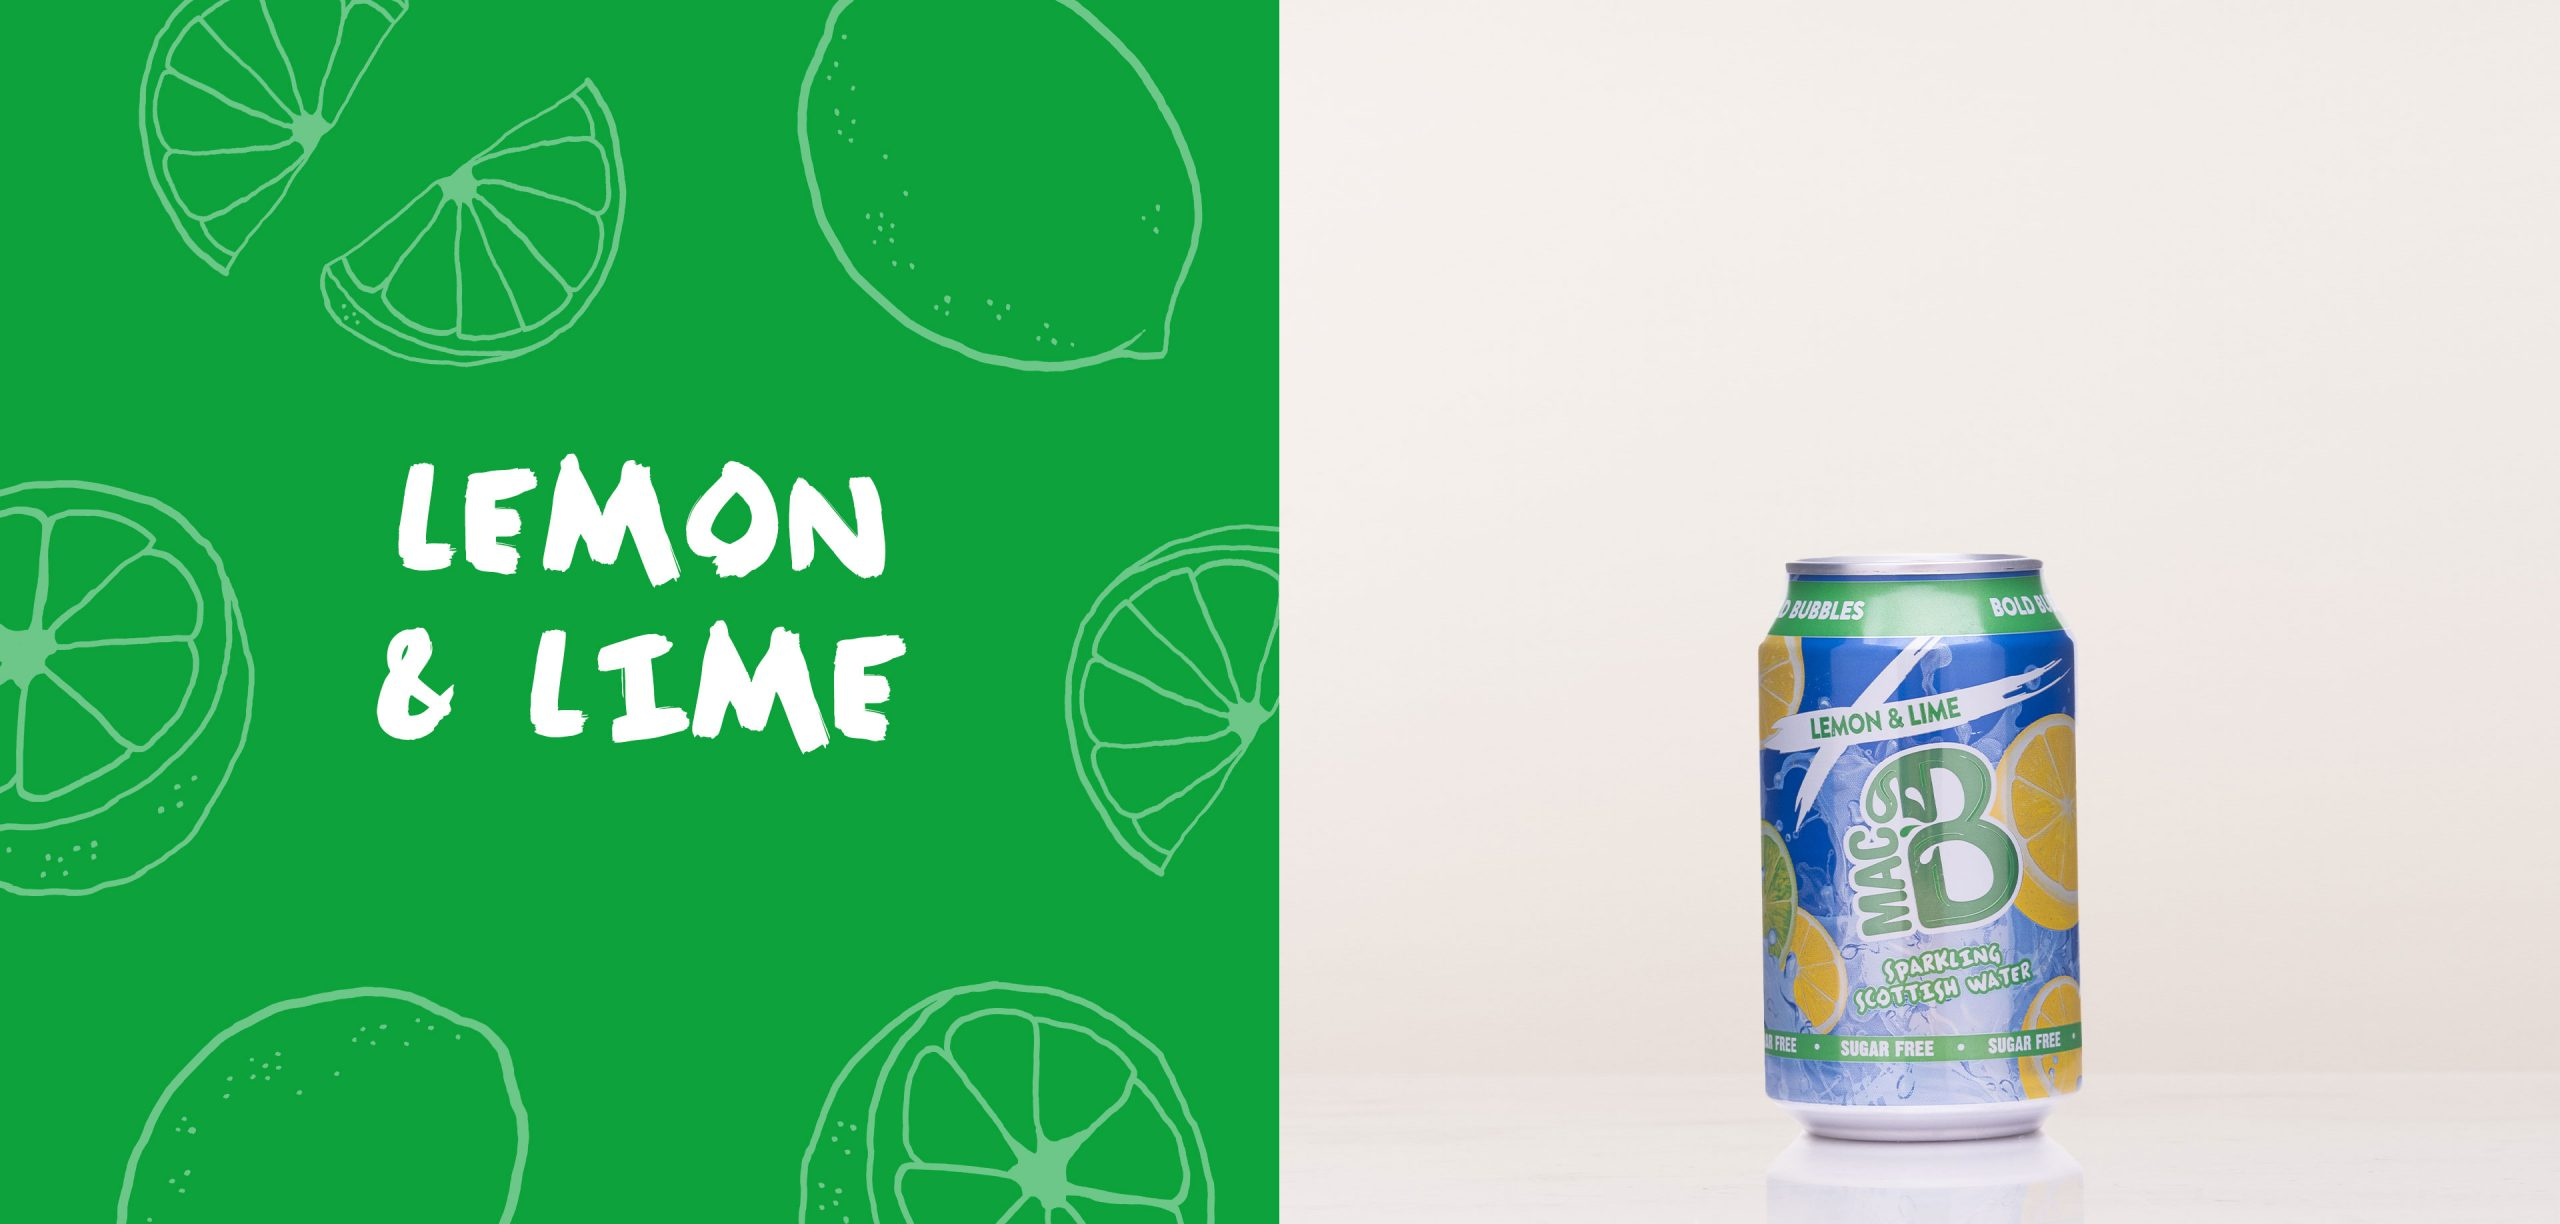 Lemon and Lime flavoured Macb sparkling flavoured water in a 330ml can